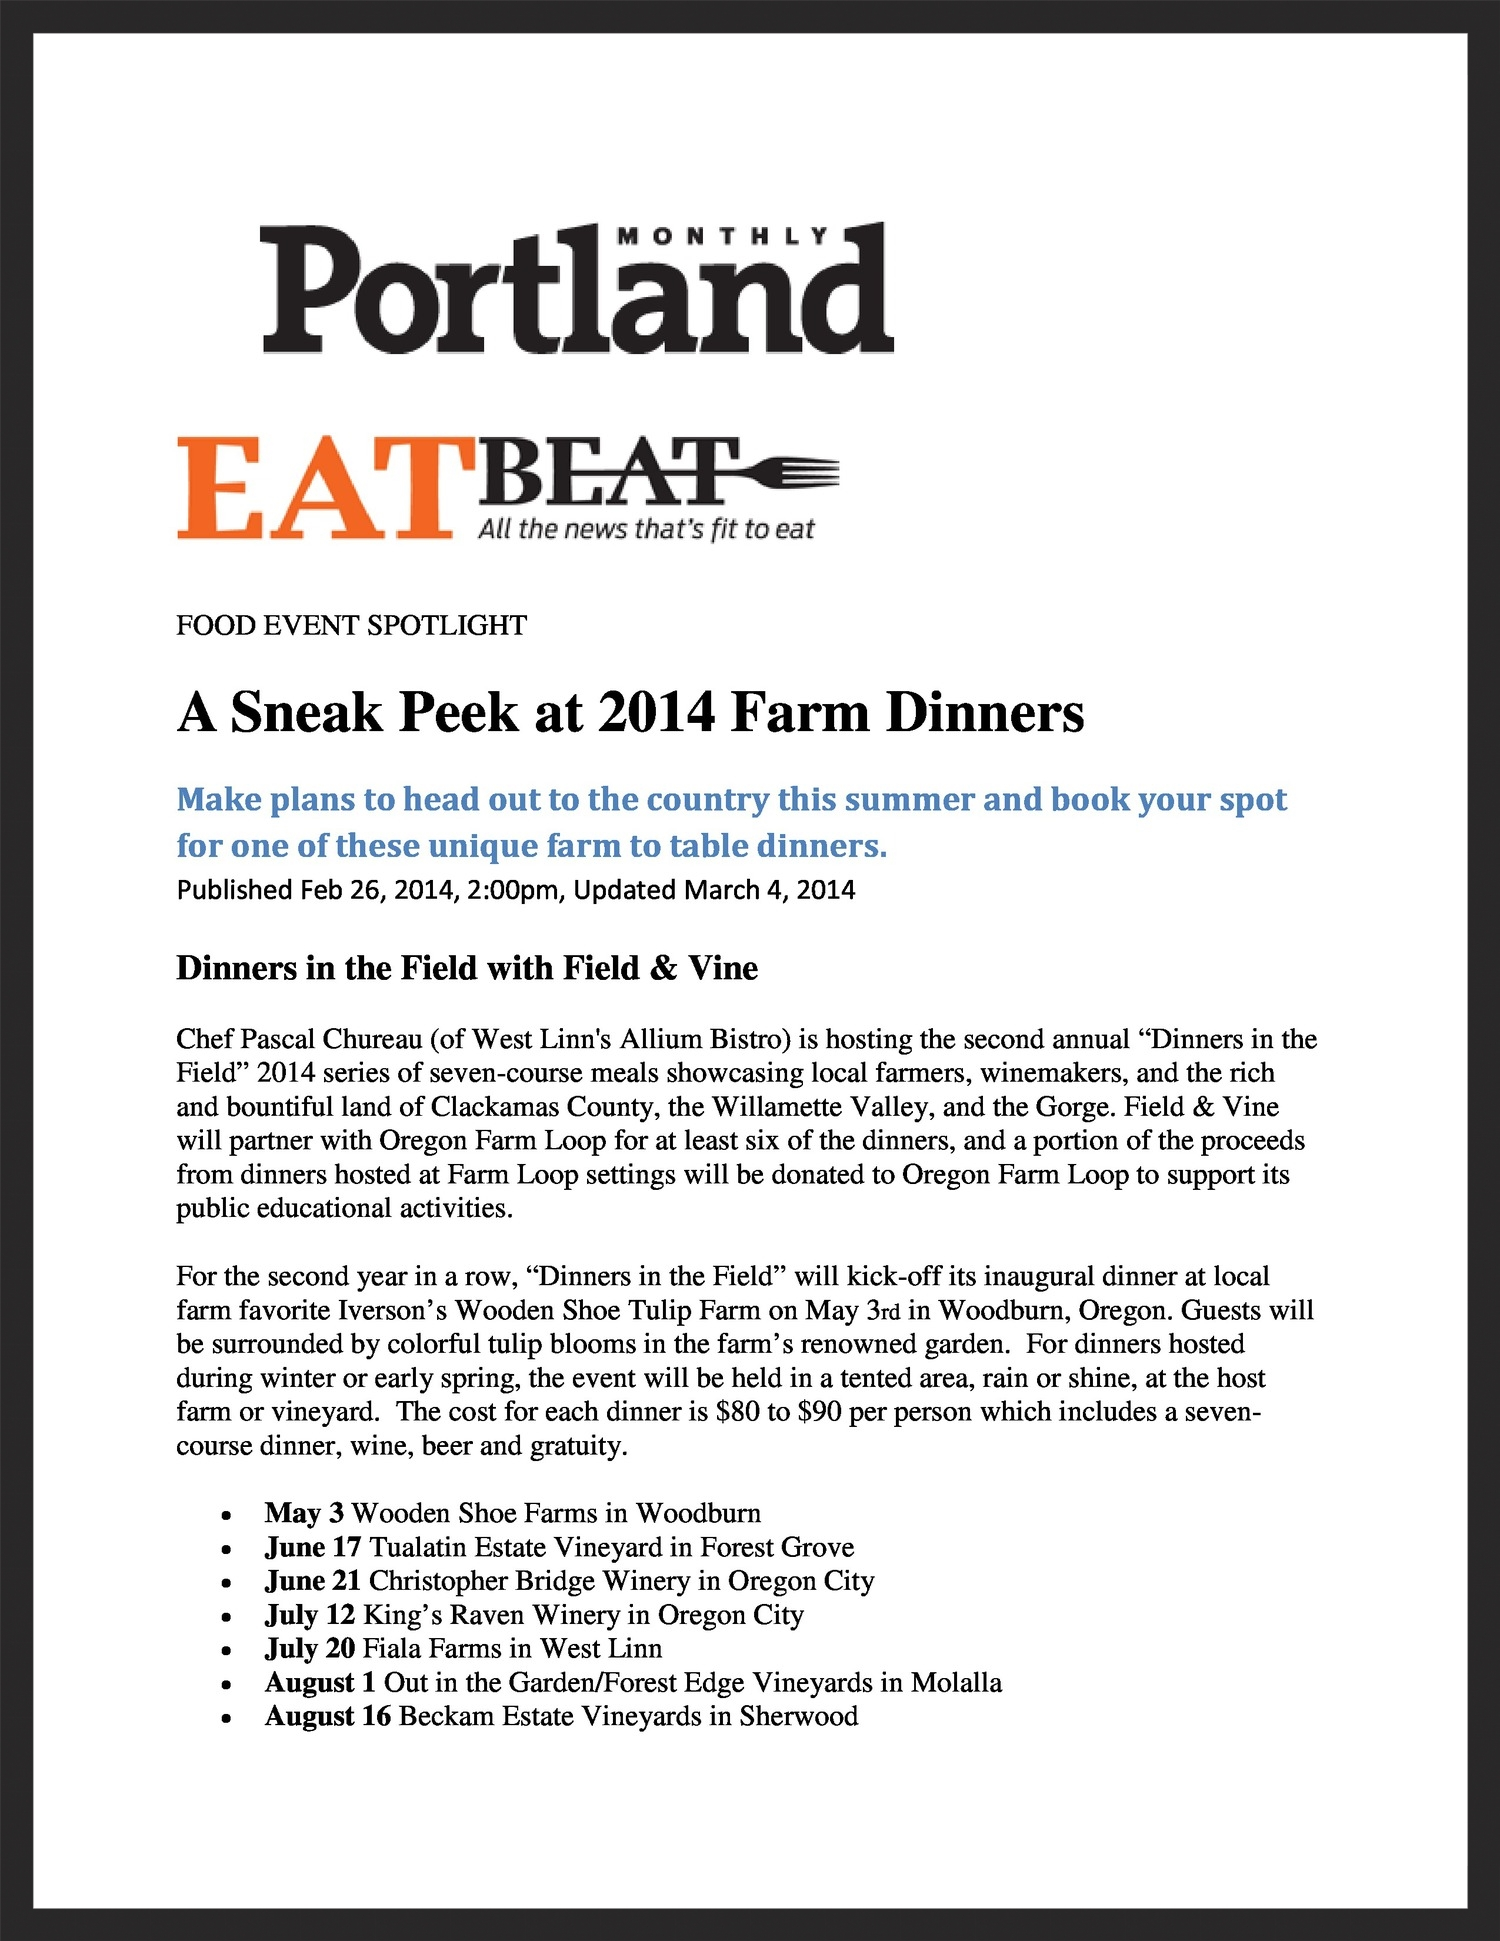 FIELD & VINE  Portland Monthly  03.04.2014